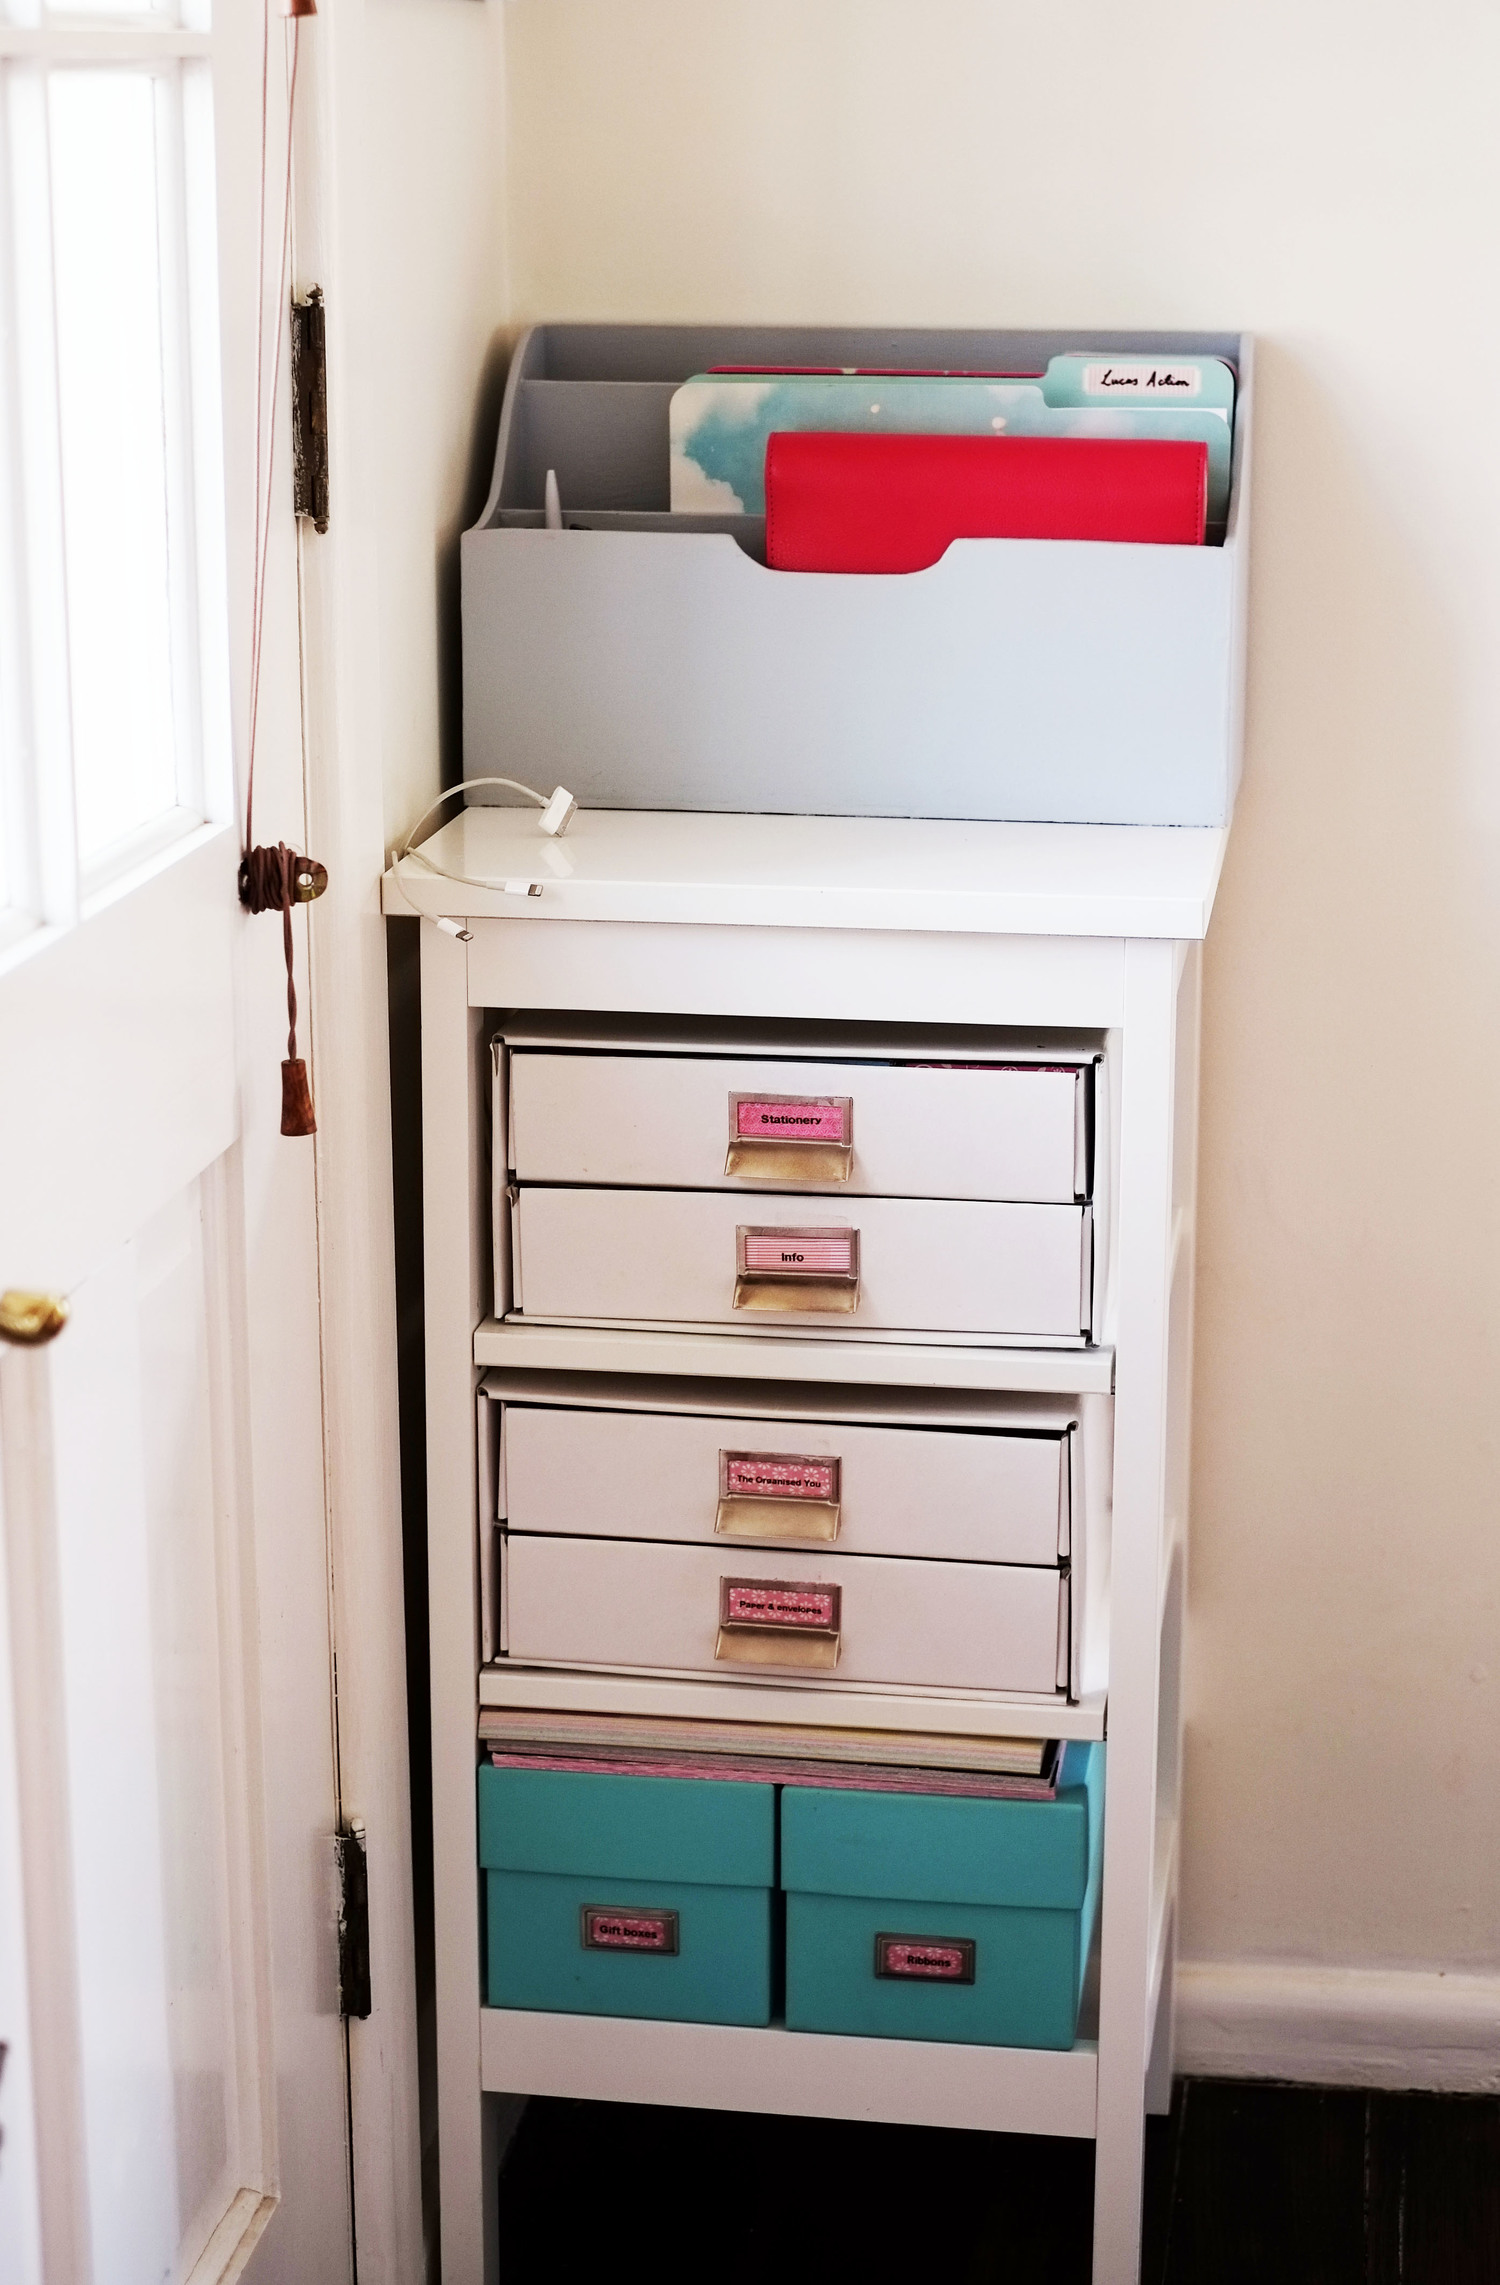 Clip cords to the side of a unit to hide cord clutter - The Organised You